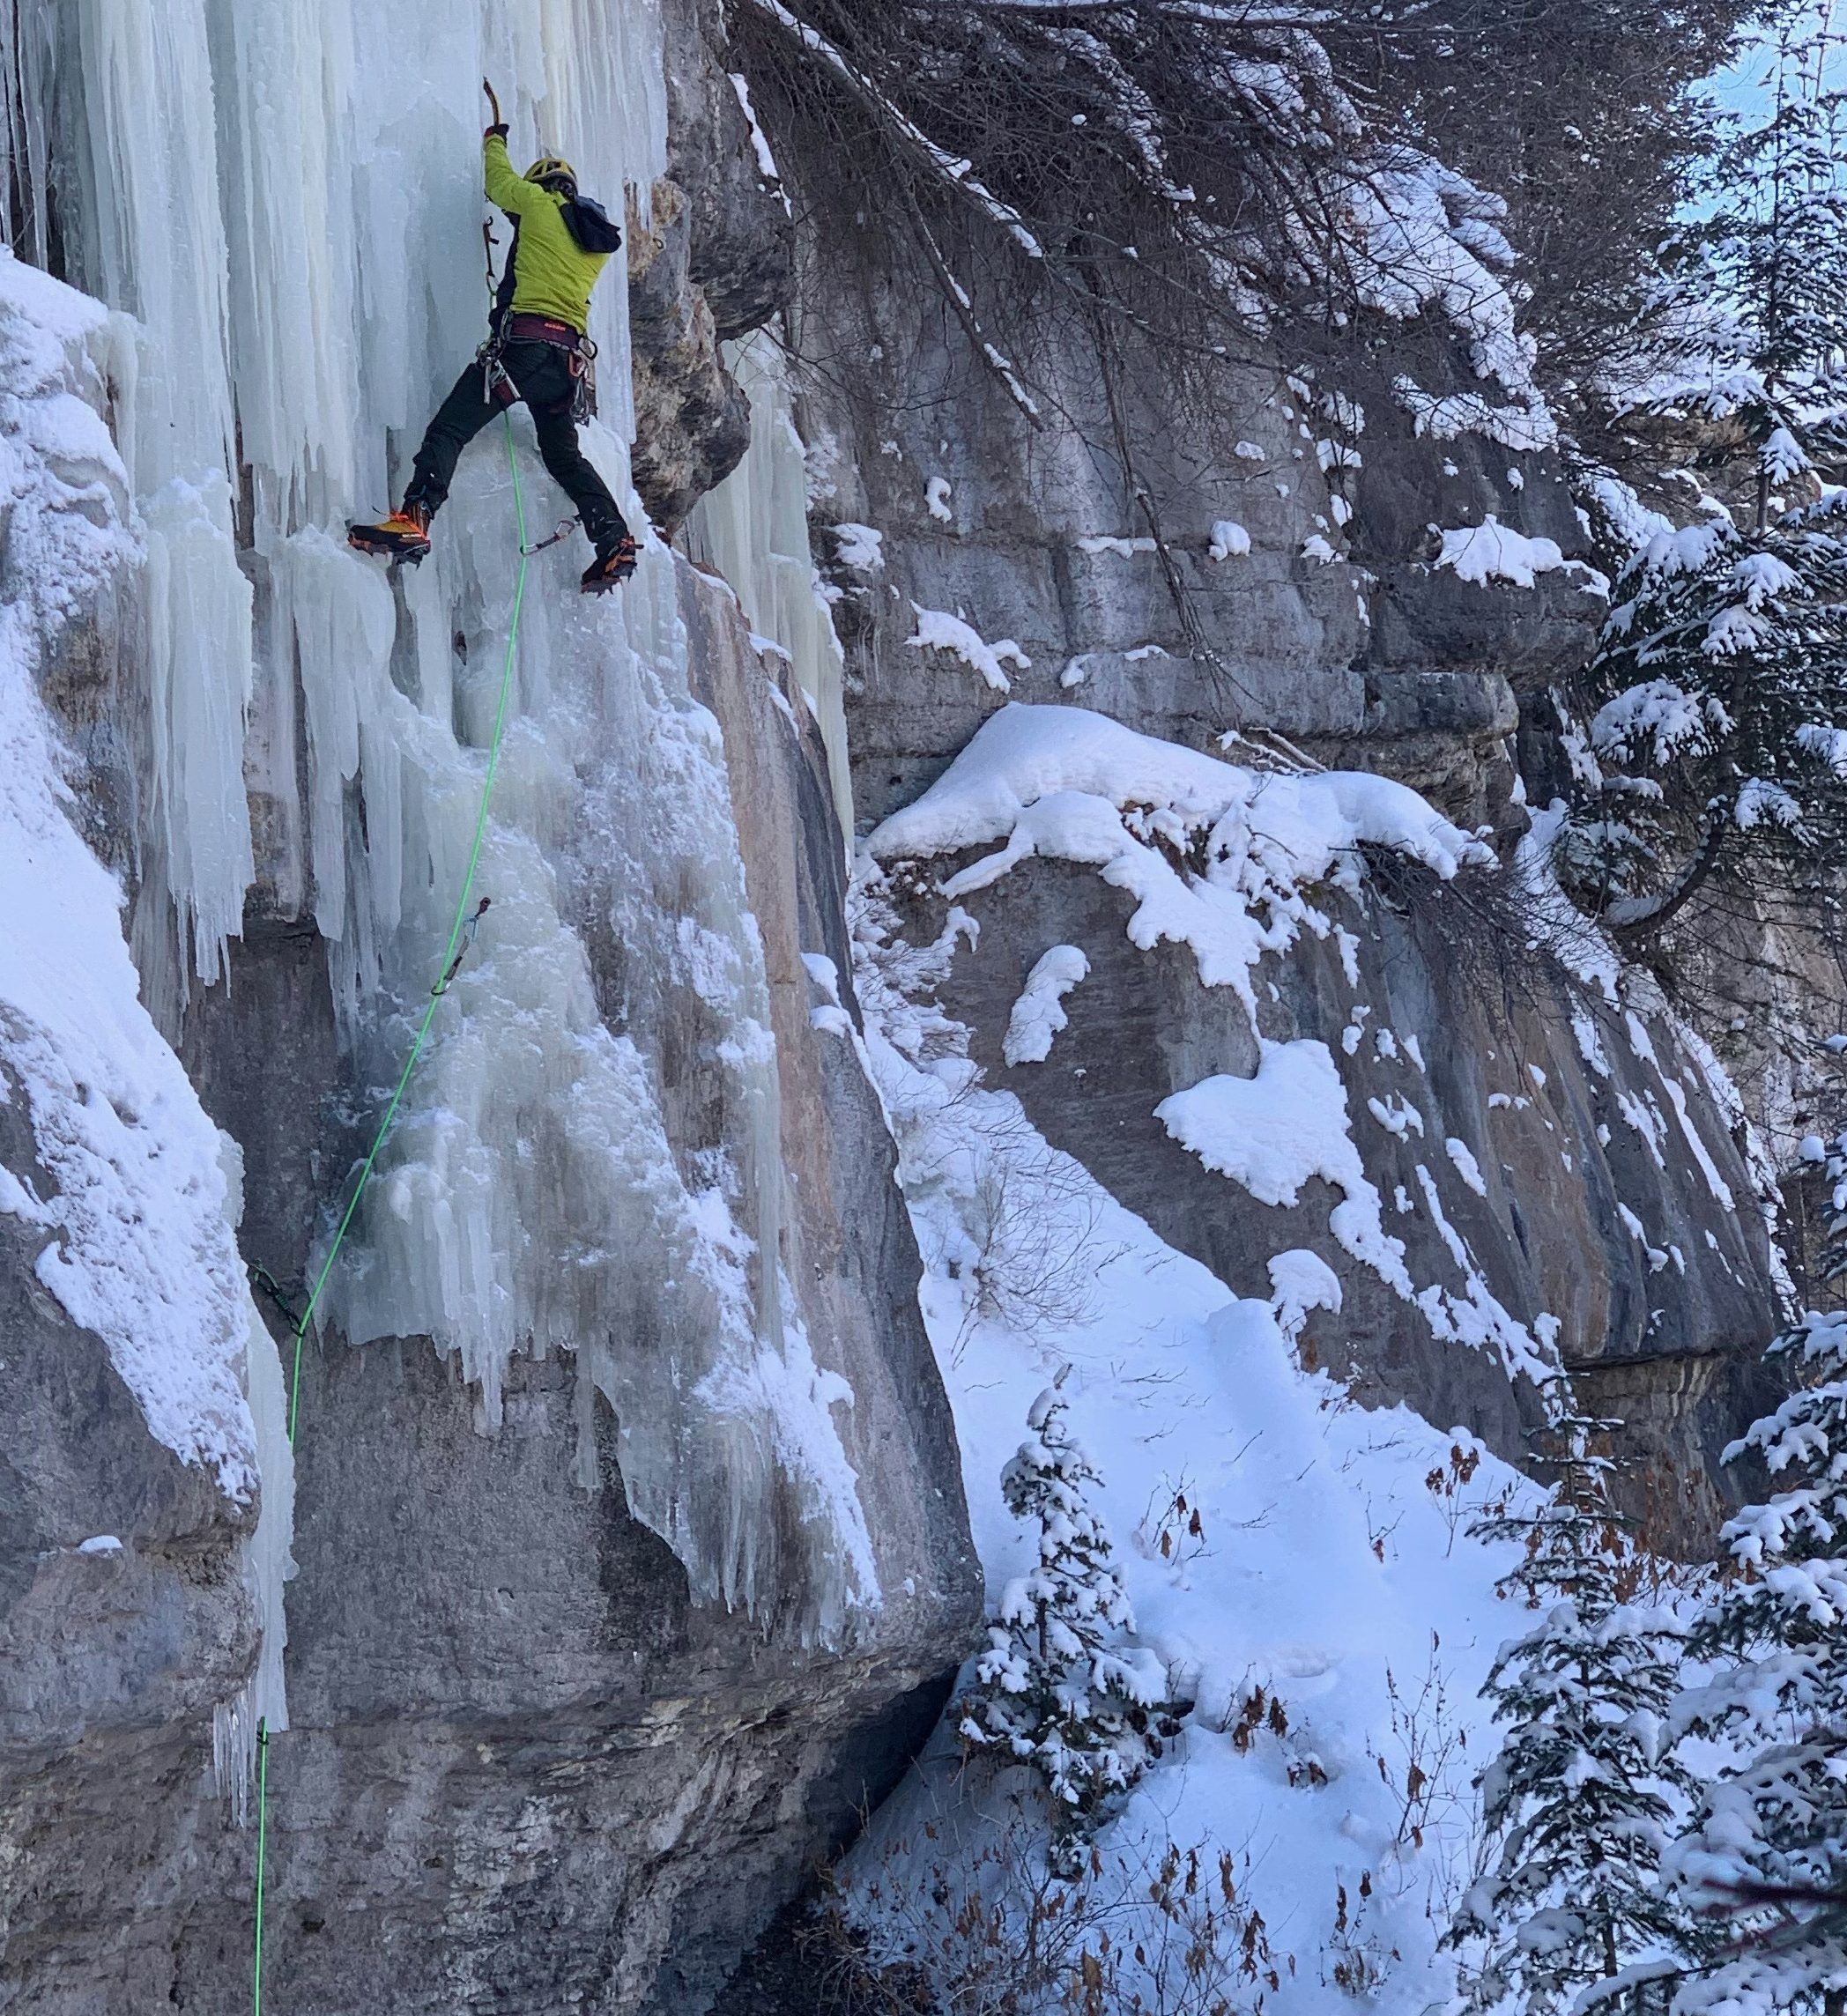 The author using the new Scarpa Phantom Tech in Vail, Colorado.